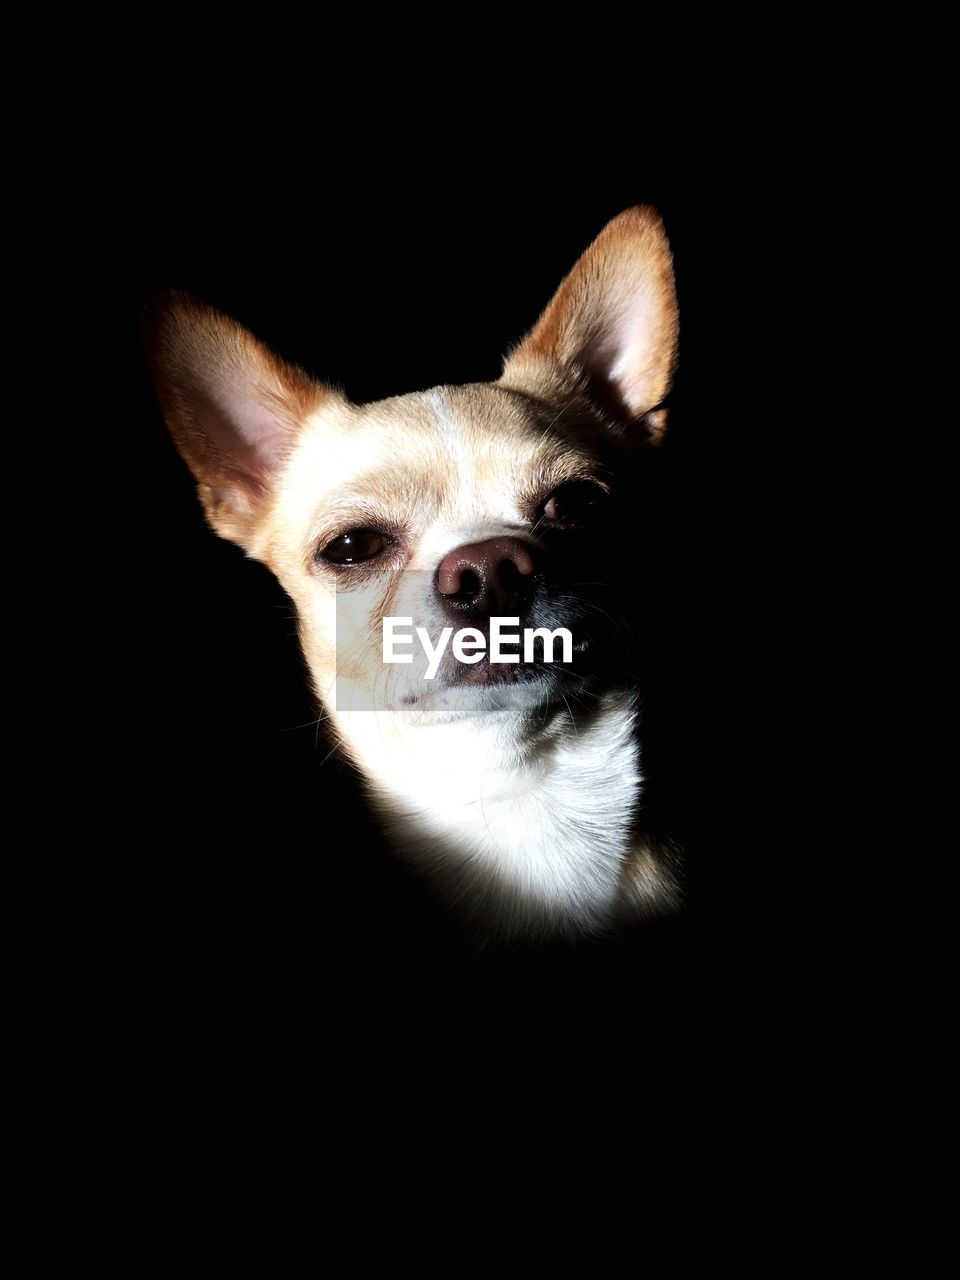 one animal, mammal, animal themes, animal, domestic animals, pets, domestic, black background, studio shot, vertebrate, dog, canine, indoors, no people, animal body part, portrait, close-up, looking at camera, animal head, copy space, chihuahua - dog